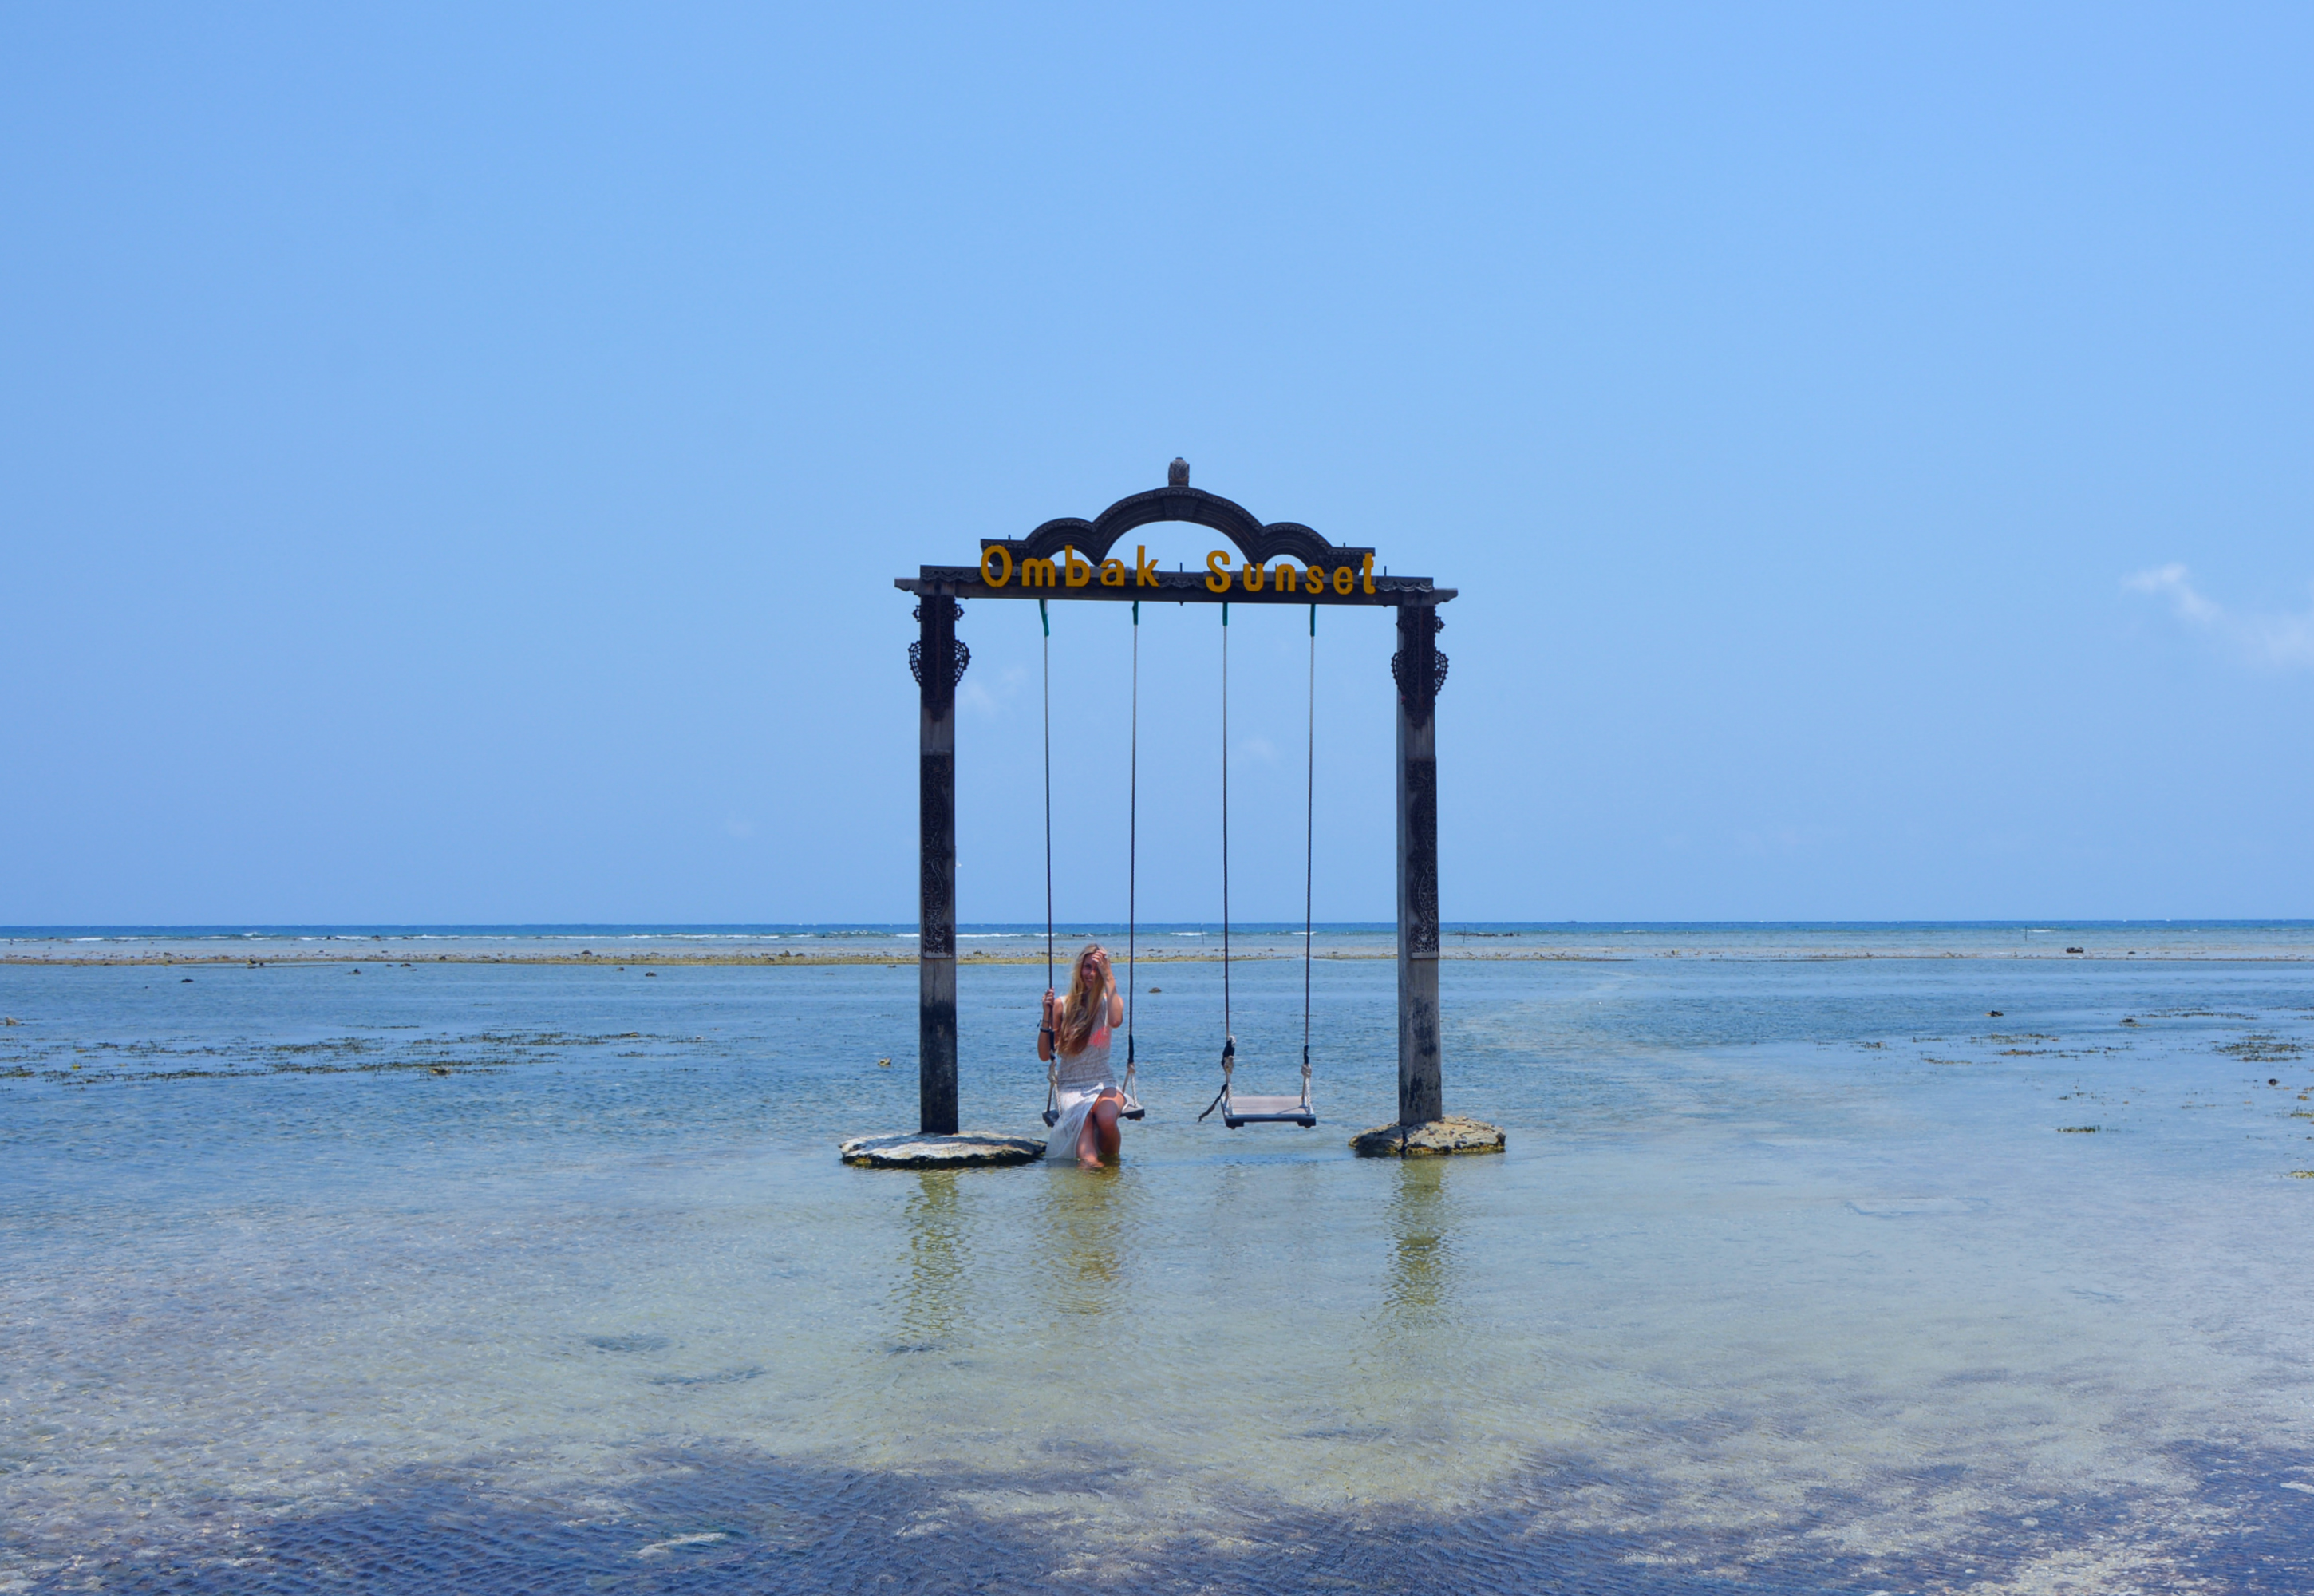 Gili trawangan sunset swing